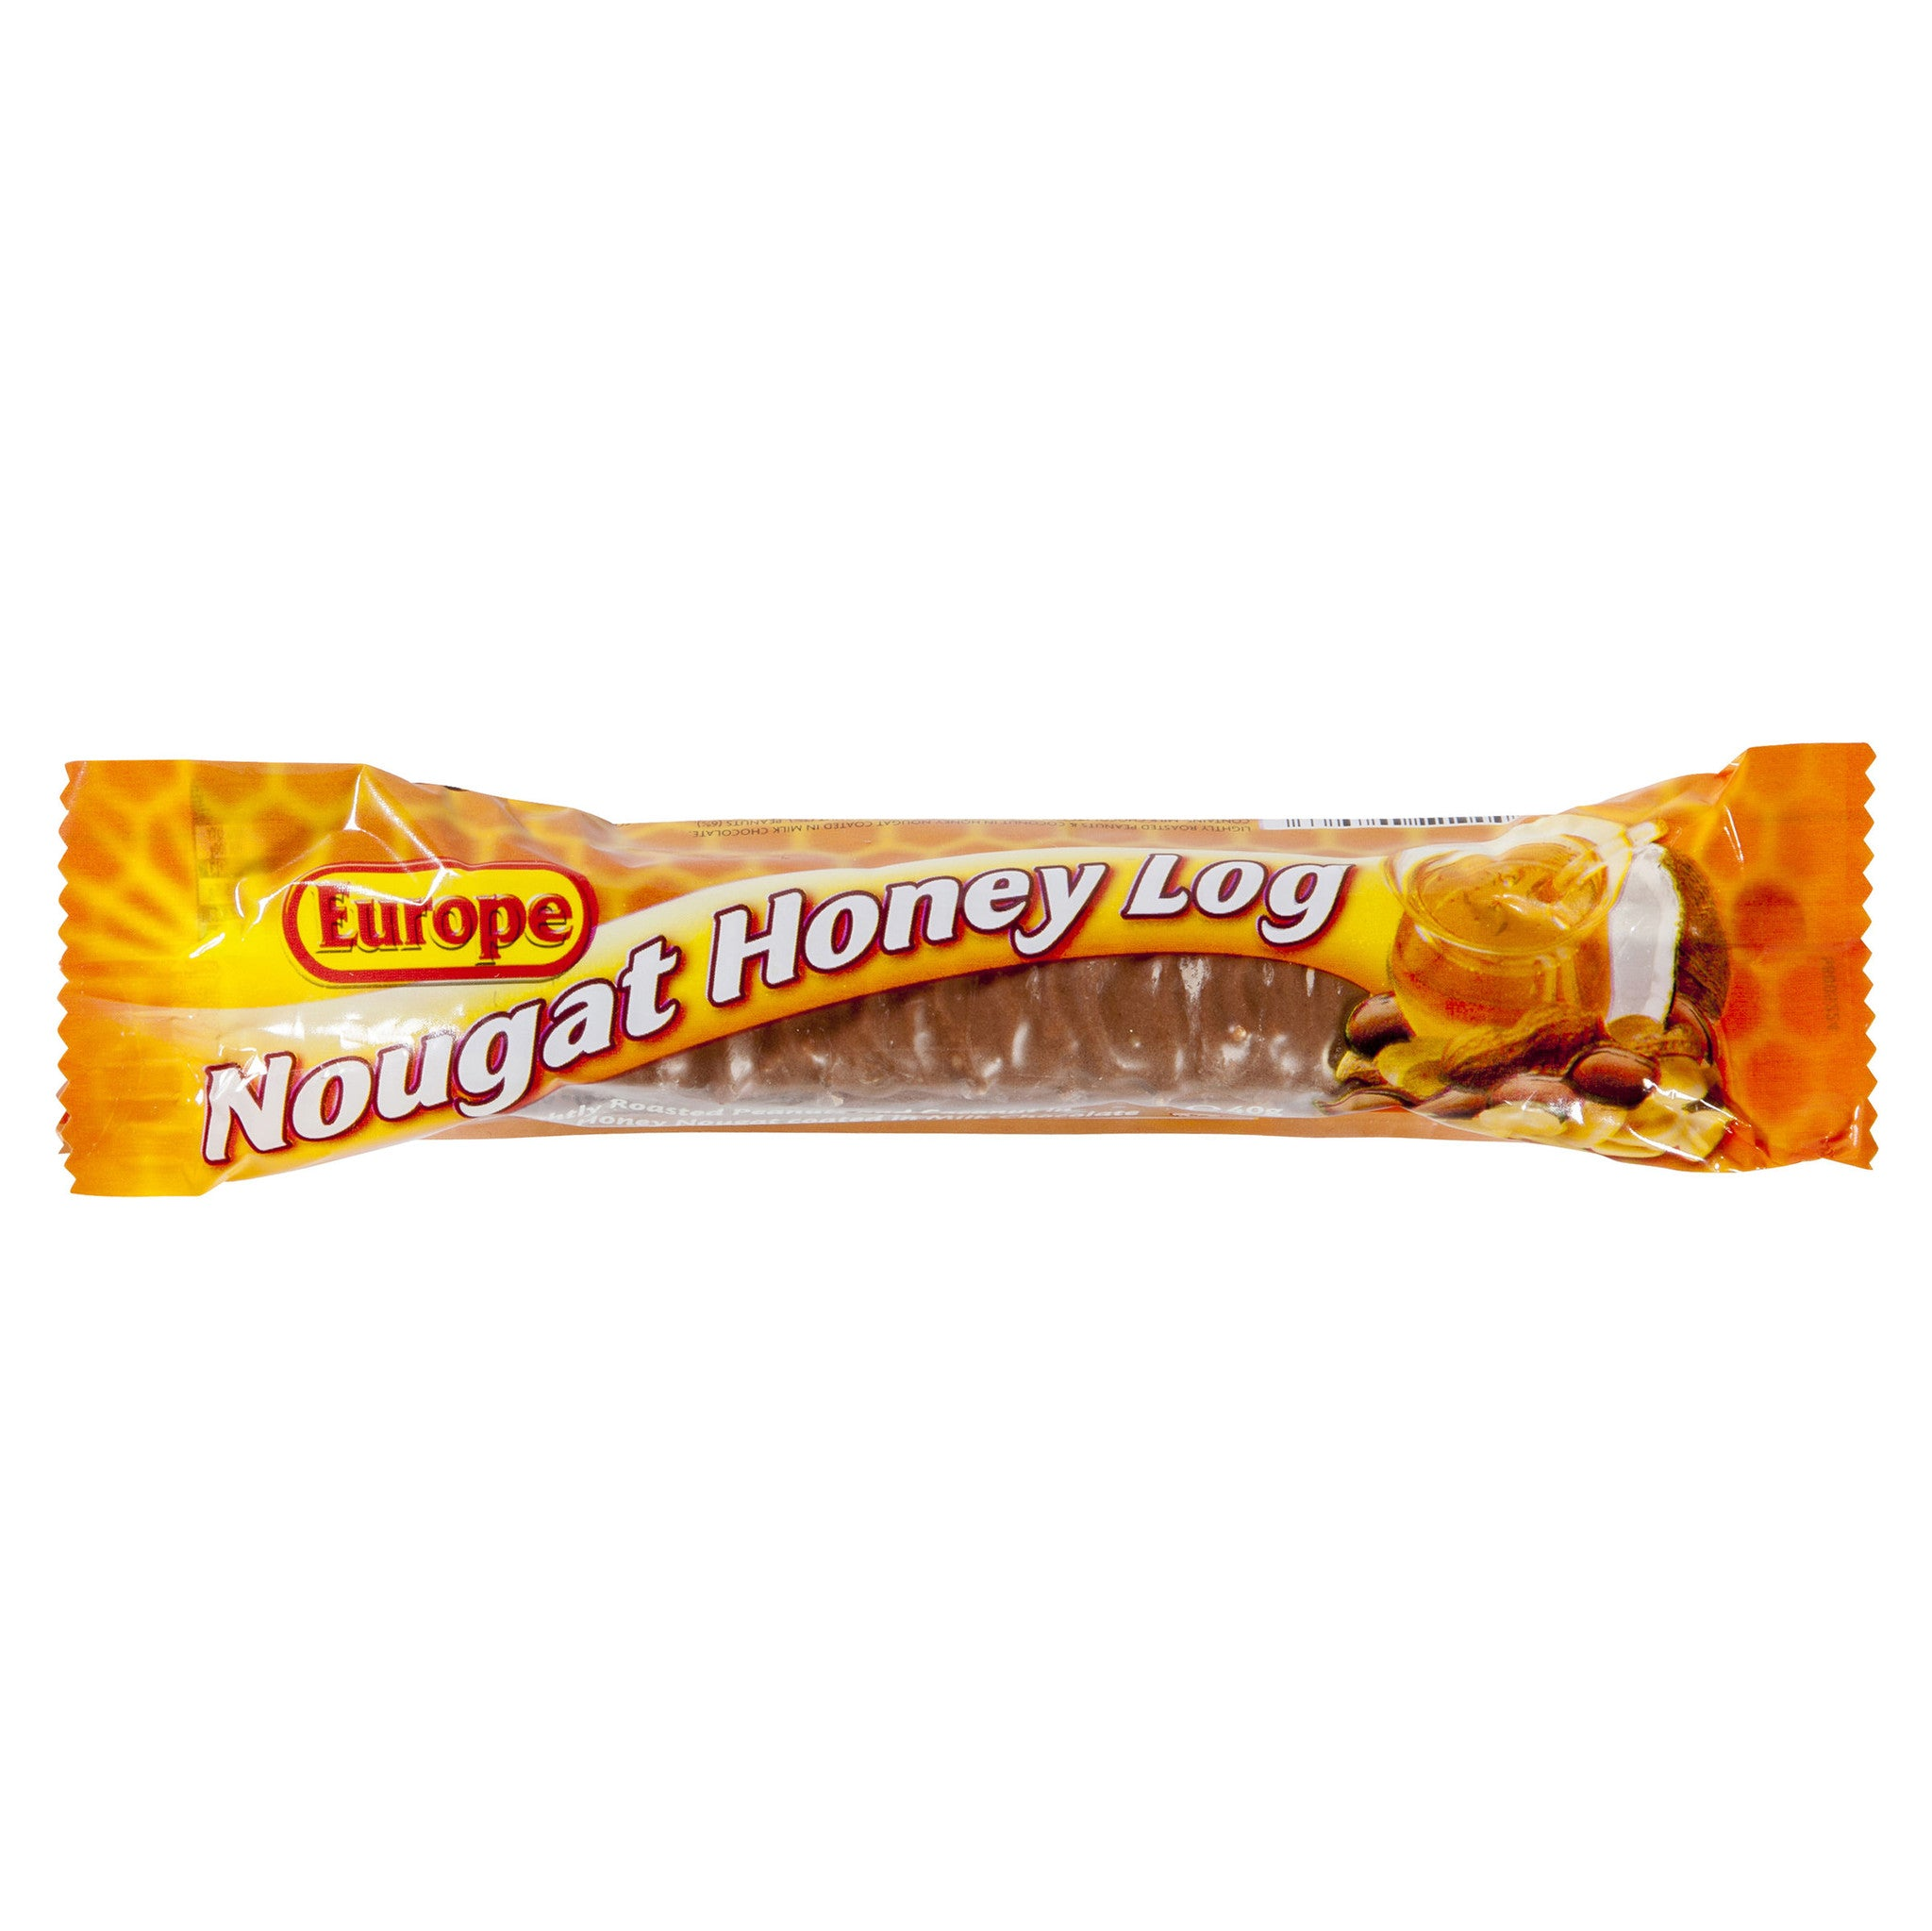 Cadbury Europe Nougat Honey Log 40g X 35 Bars - Remas